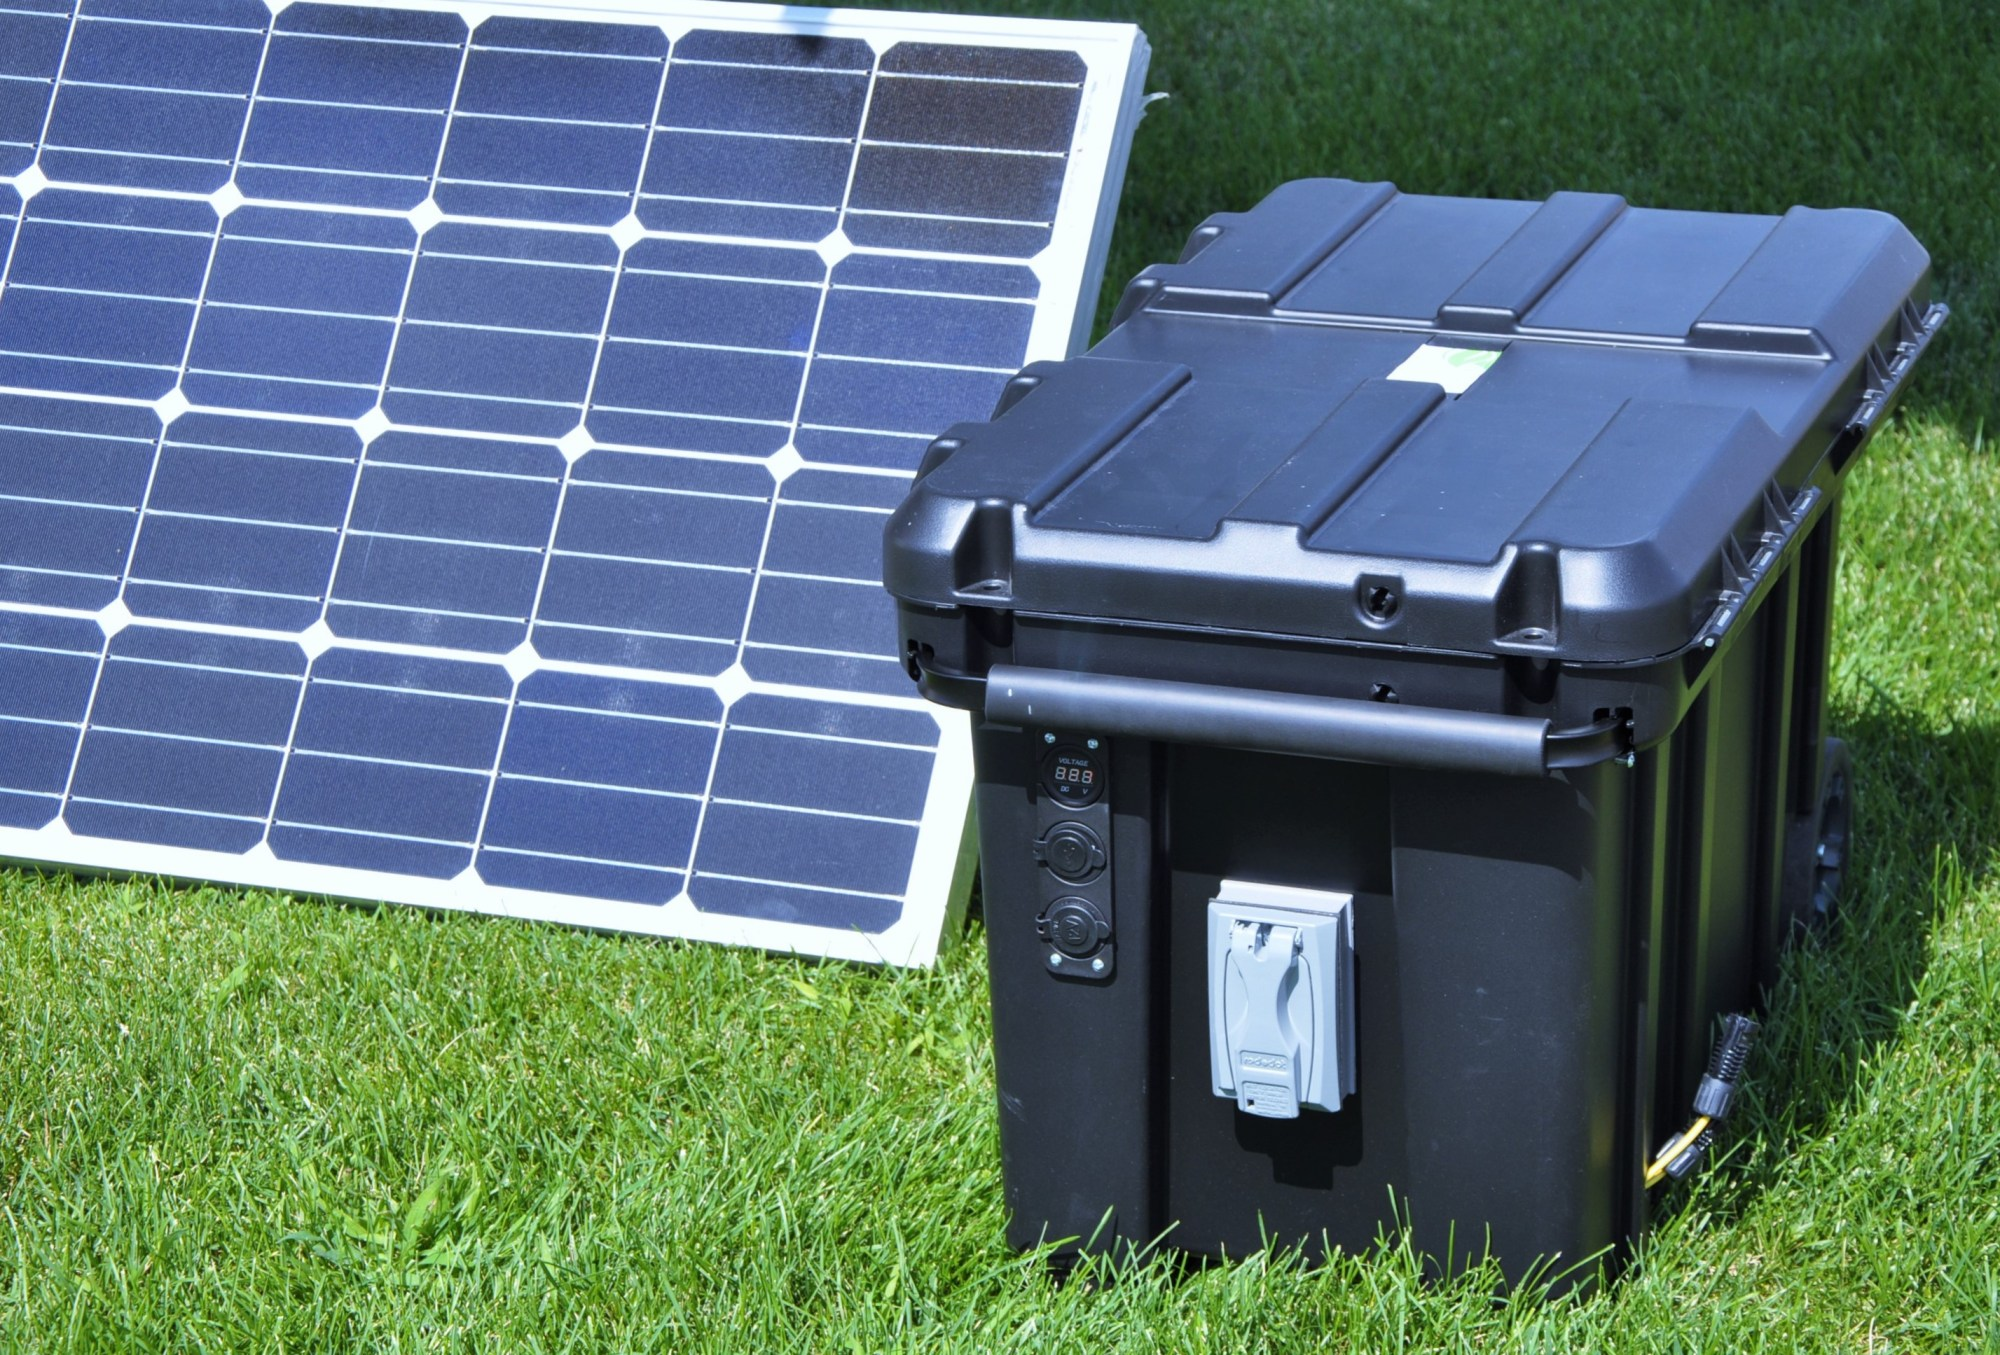 hight resolution of diagram solar panel with generator back up